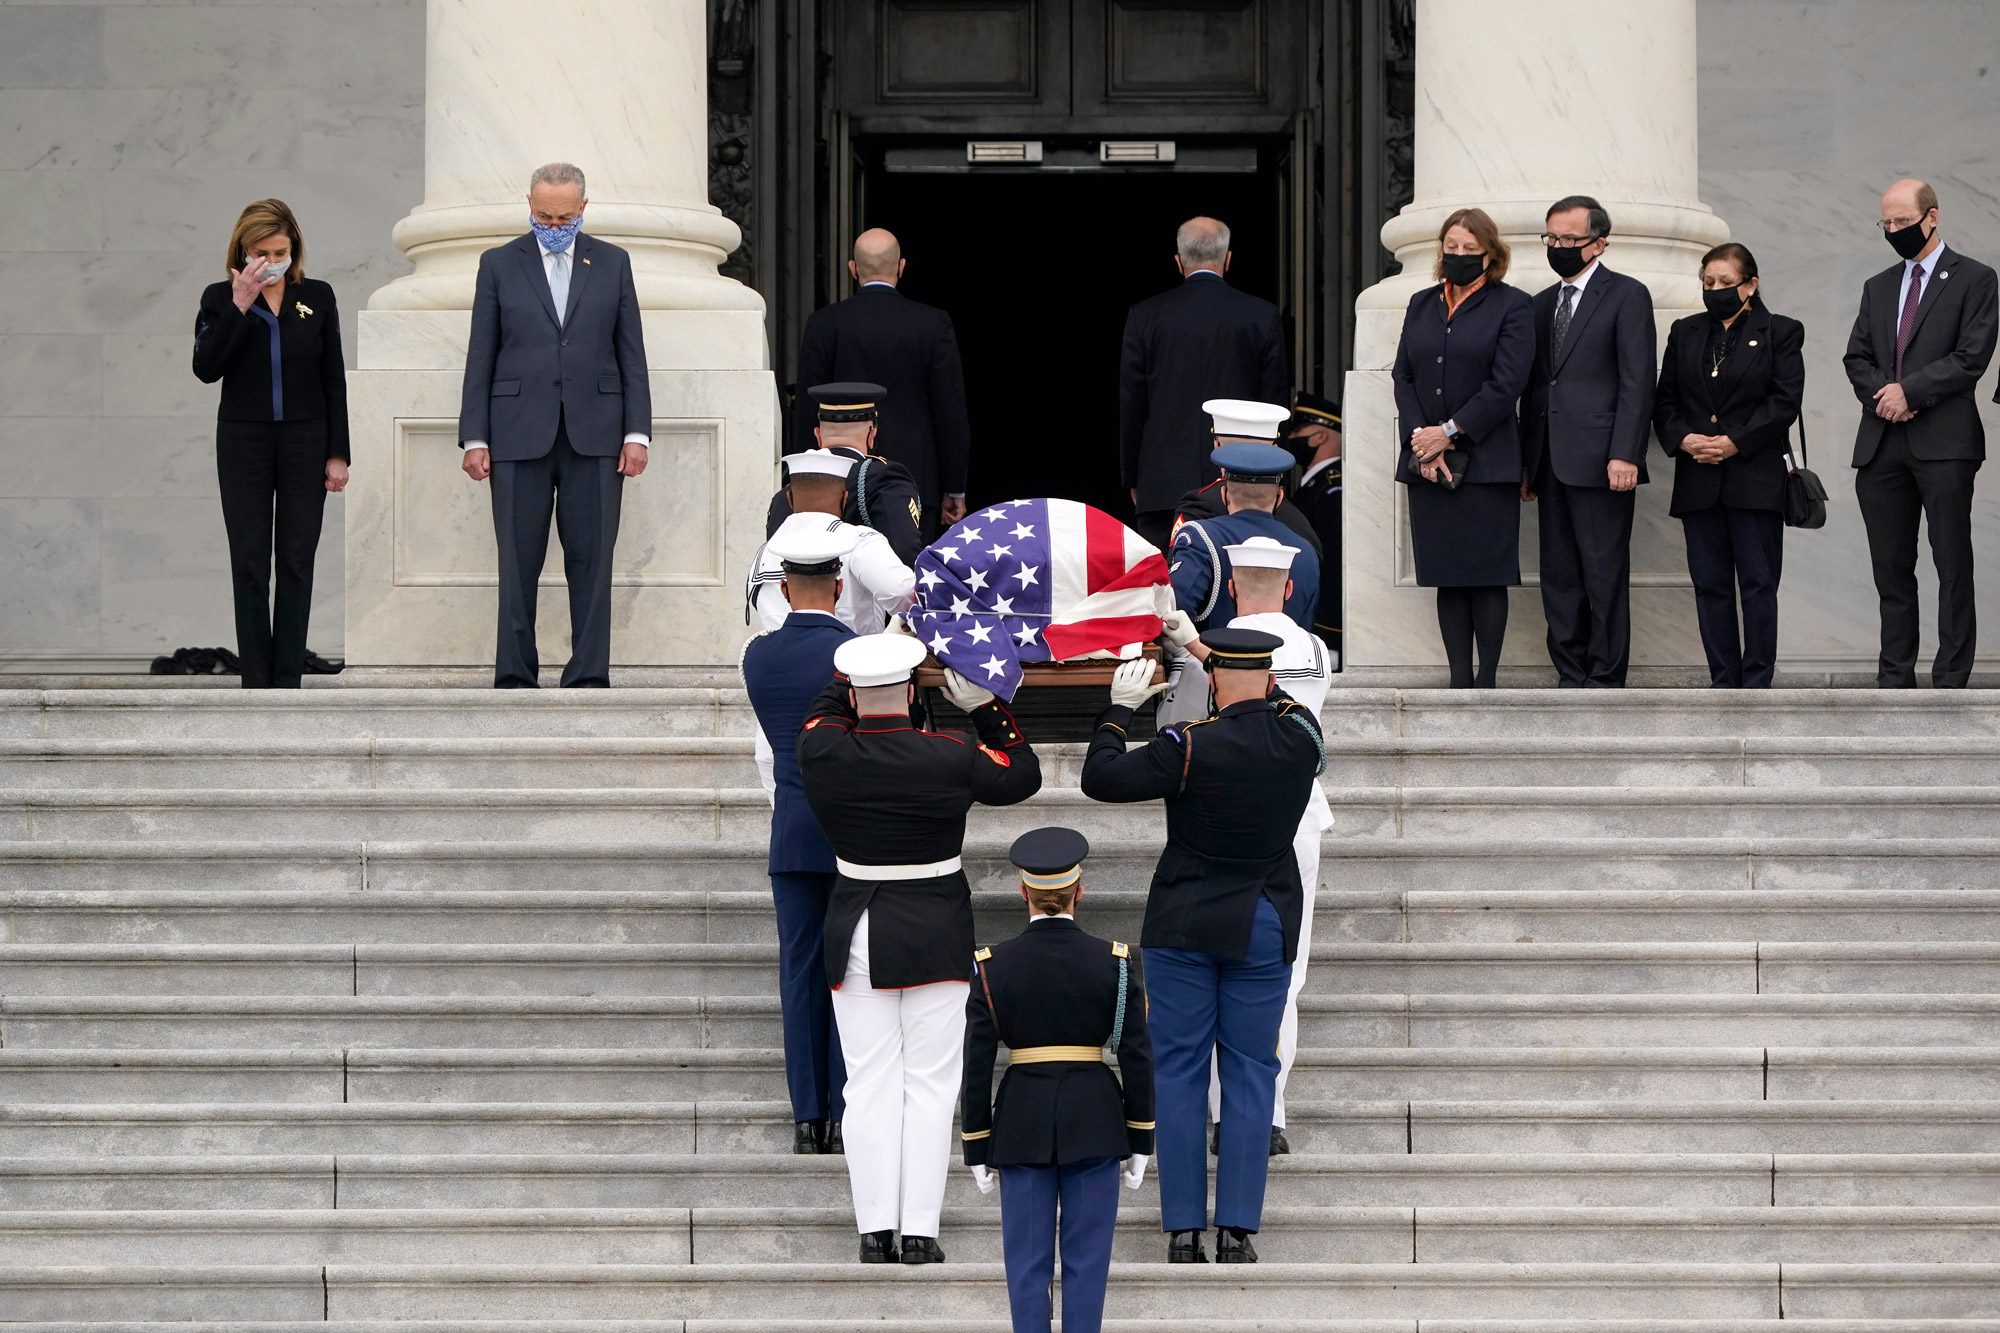 The flag-draped casket of Justice Ruth Bader Ginsburg is carried by a joint services military honor guard to lie in state at the U.S. Capitol on September 25 in Washington, DC.